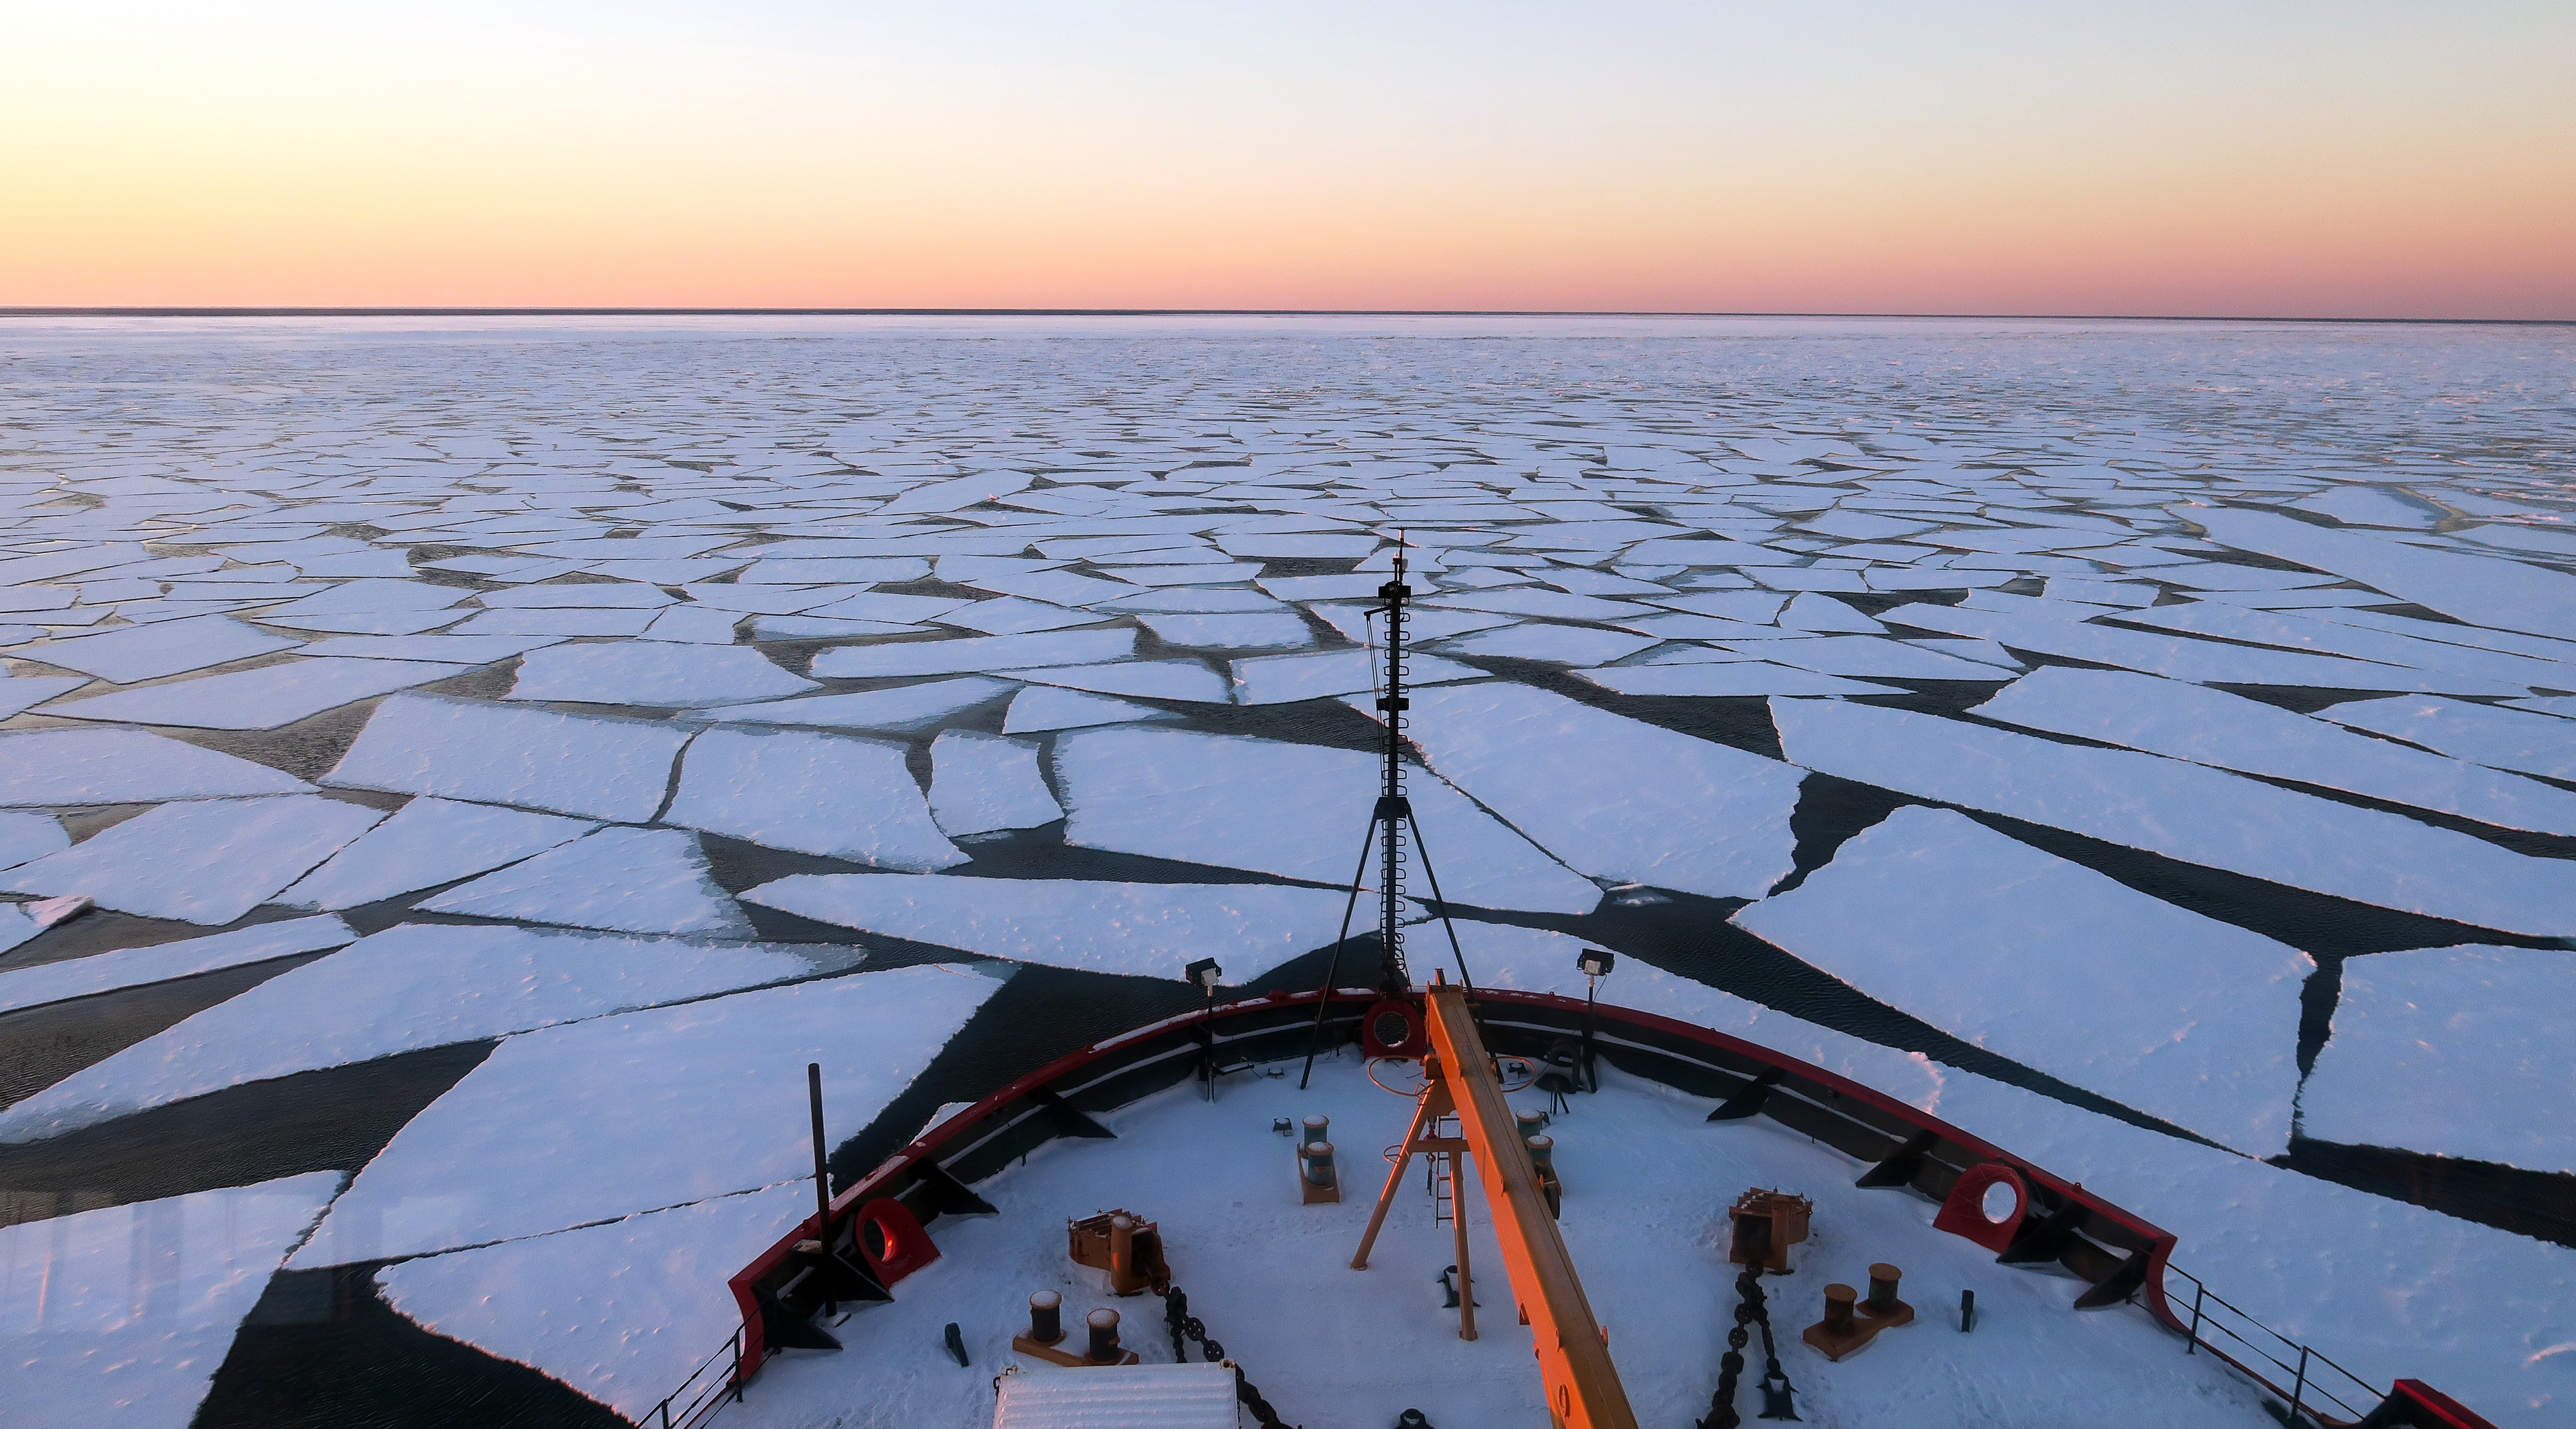 "Broken sea ice stretches out in front of U.S. Coast Guard icebreaker ""Healy"" as it cuts through the Beaufort Sea."